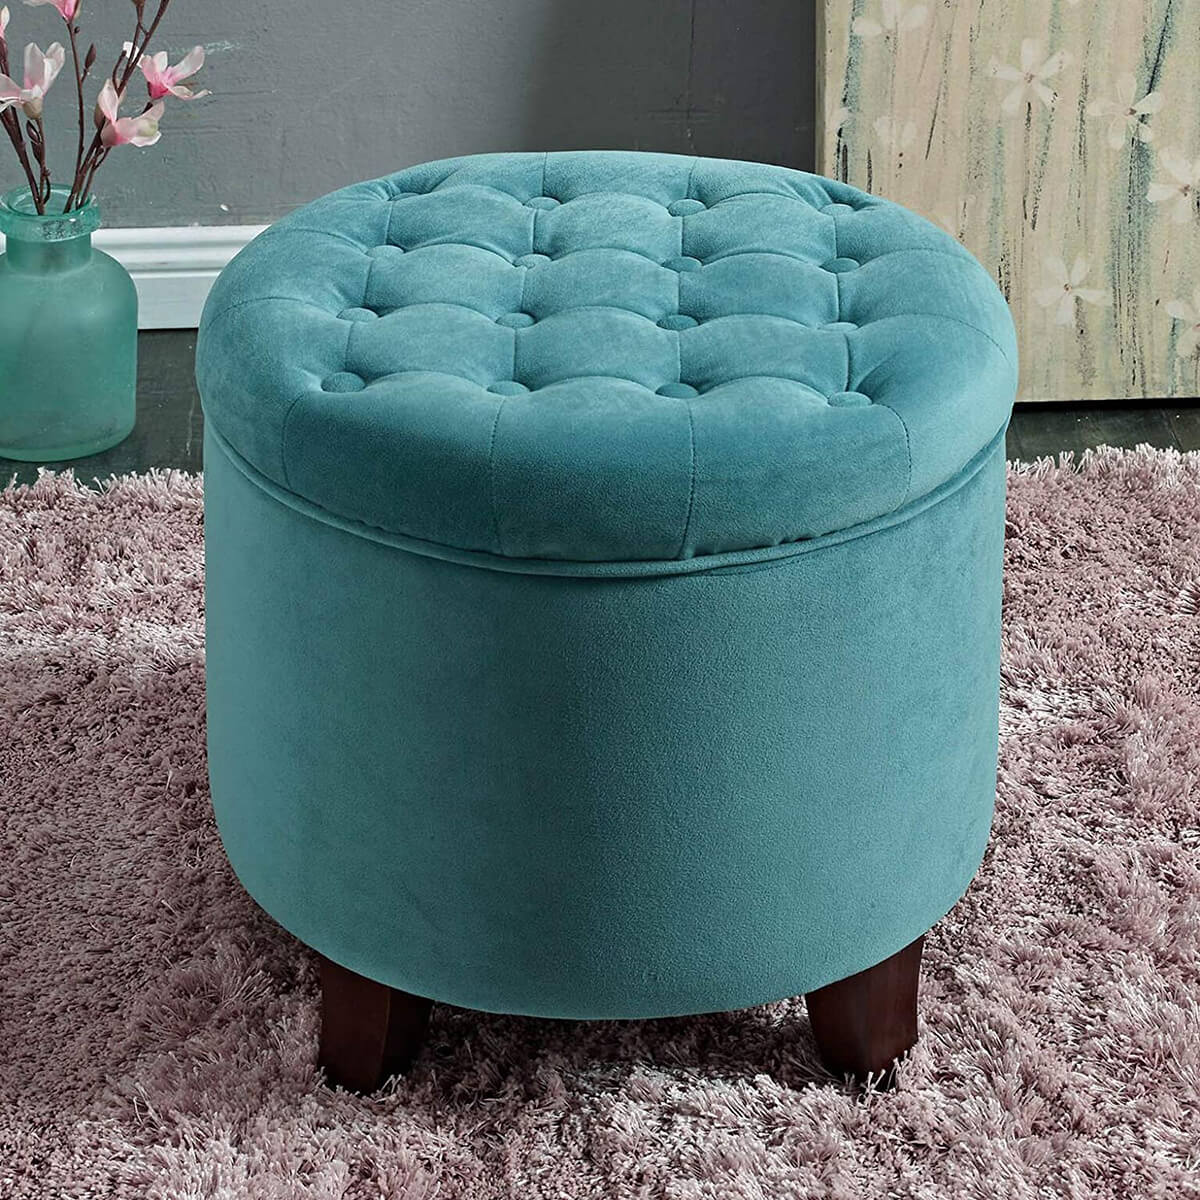 Terrific 24 Best Hassocks And Ottomans To Make Your Room Relaxing In 2019 Creativecarmelina Interior Chair Design Creativecarmelinacom